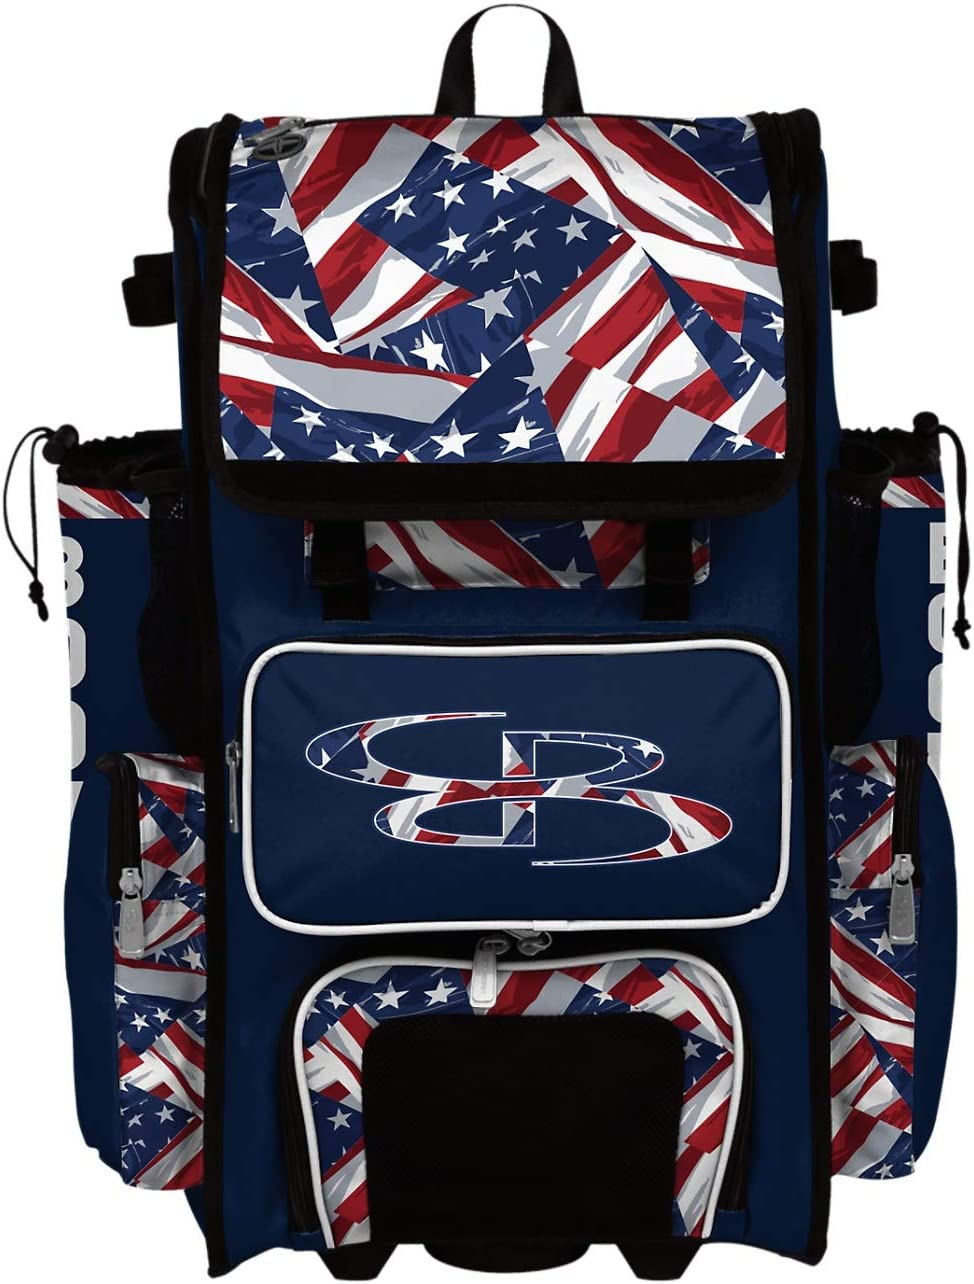 New York Mall Boombah Superpack Hybrid Rolling Bat USA Navy Max 85% OFF - Bag Independence